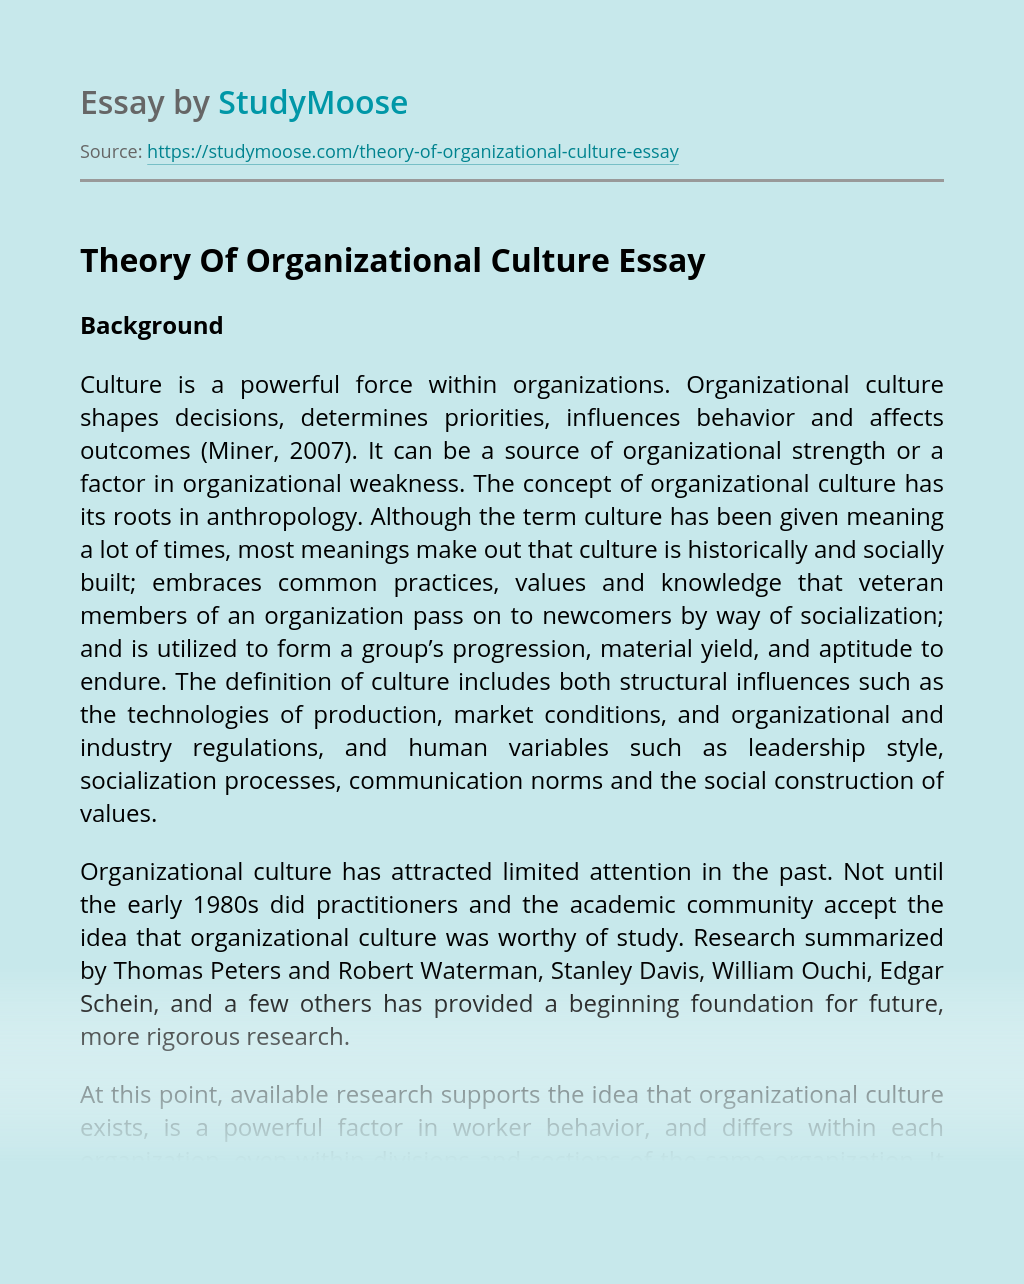 Theory Of Organizational Culture